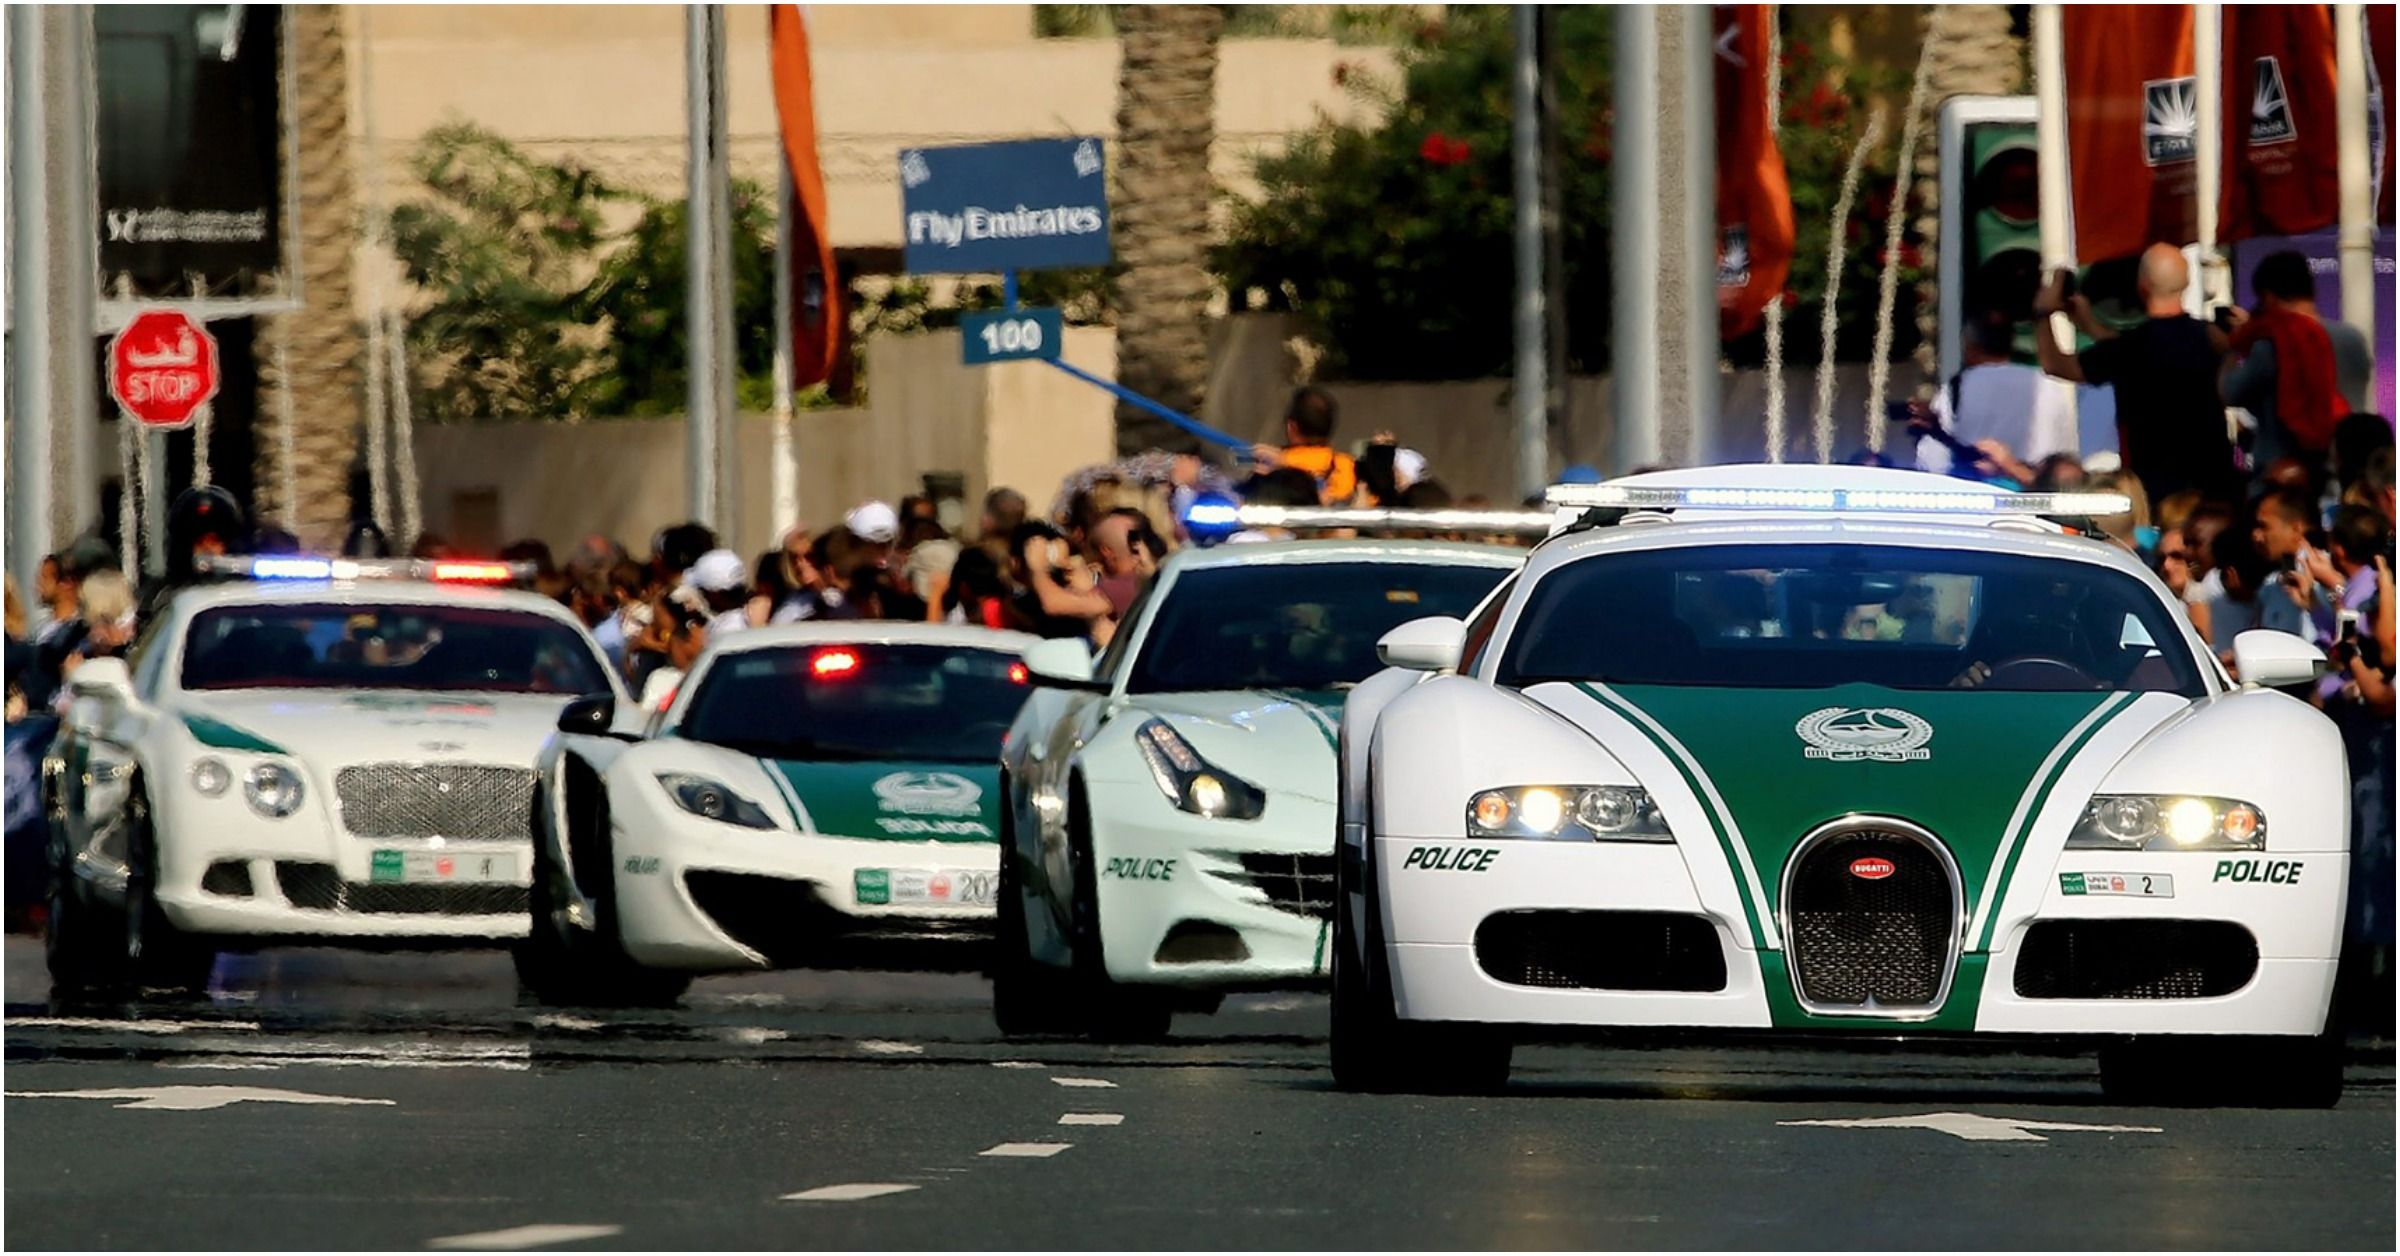 15 Facts About Dubai S Police Cars They Want To Keep On The Dl